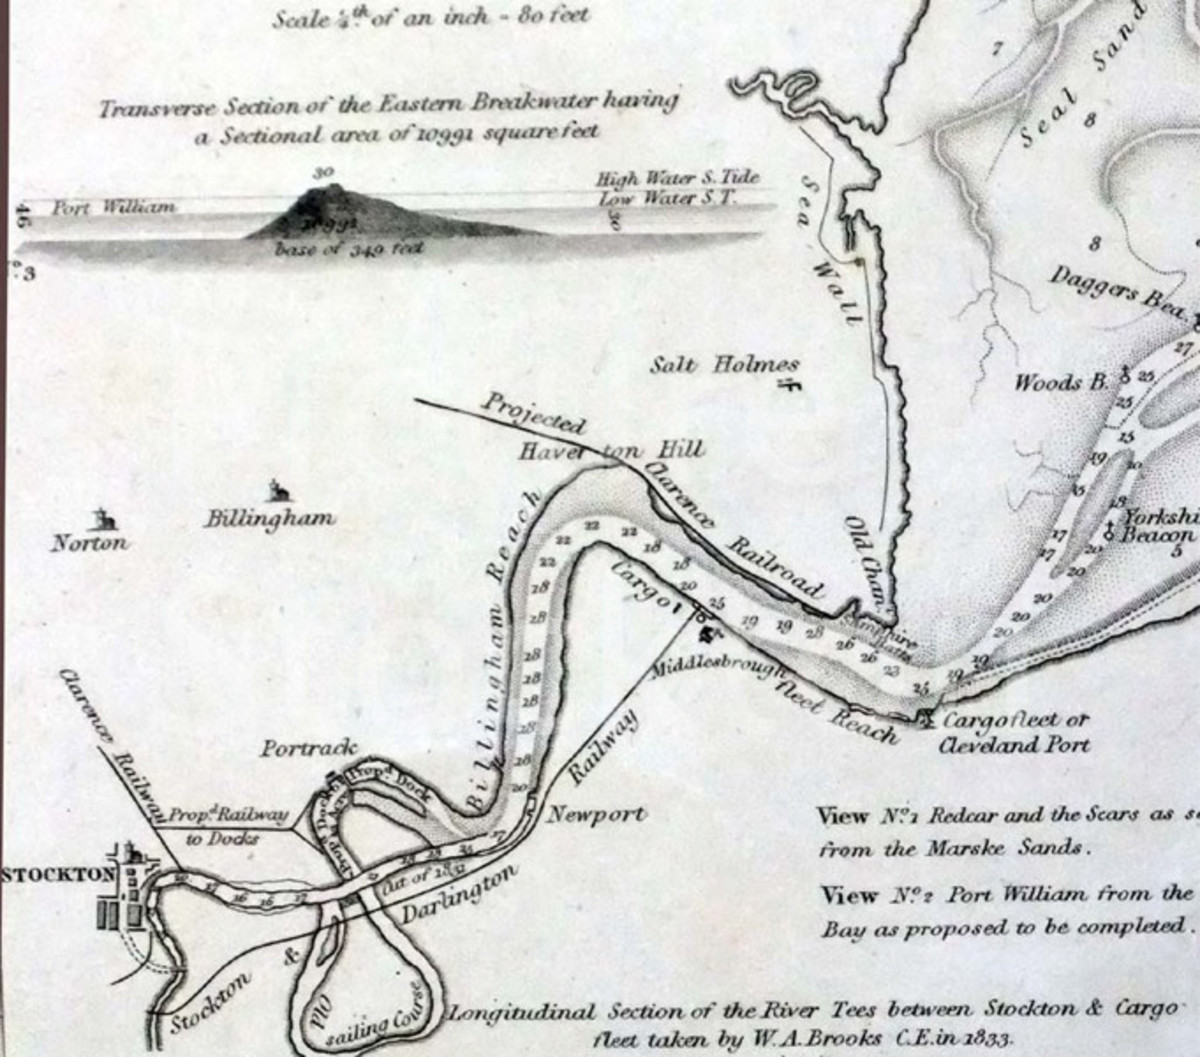 Plan shows the Tees Cut at Portrack near Stockton completed in 1831. The earlier Mandale Cut completed 1810 was to straighten the southern meander in the very 'mobile' River Tees